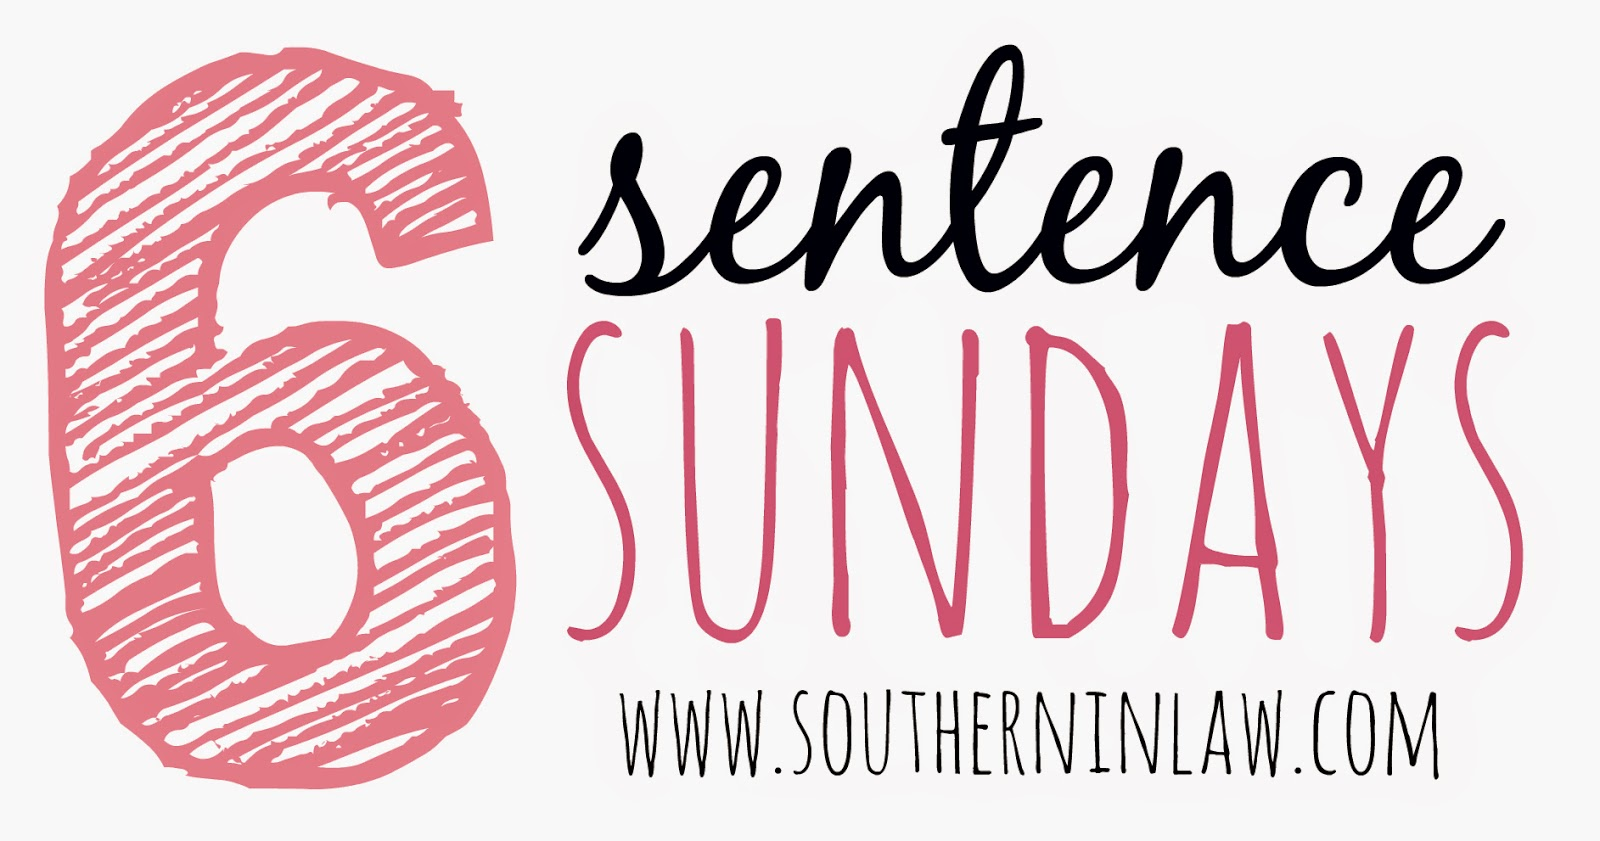 6 Sentence Sundays on Southern In-Law